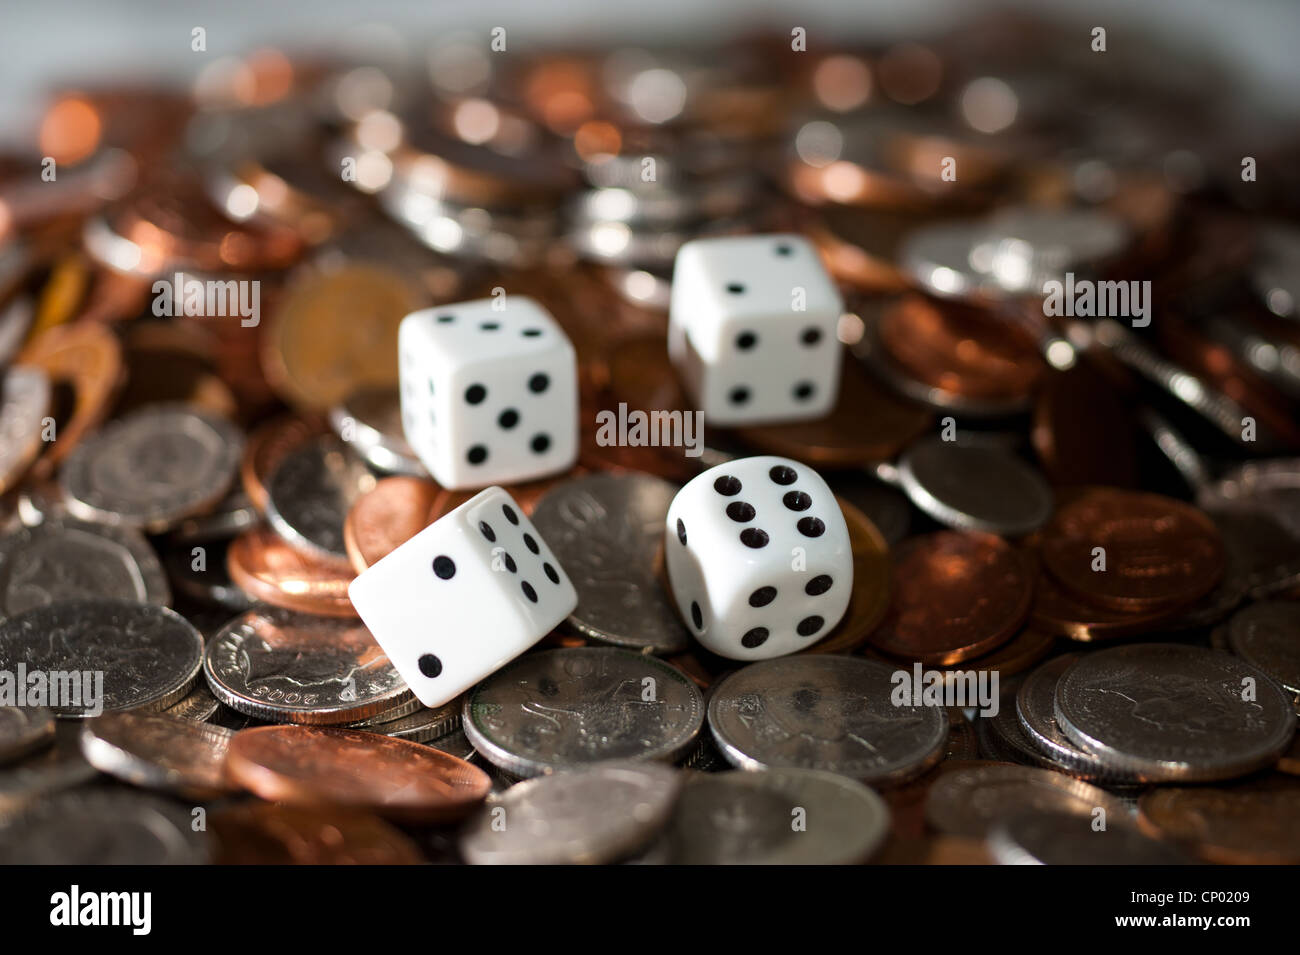 Dice on pile of coins - Stock Image